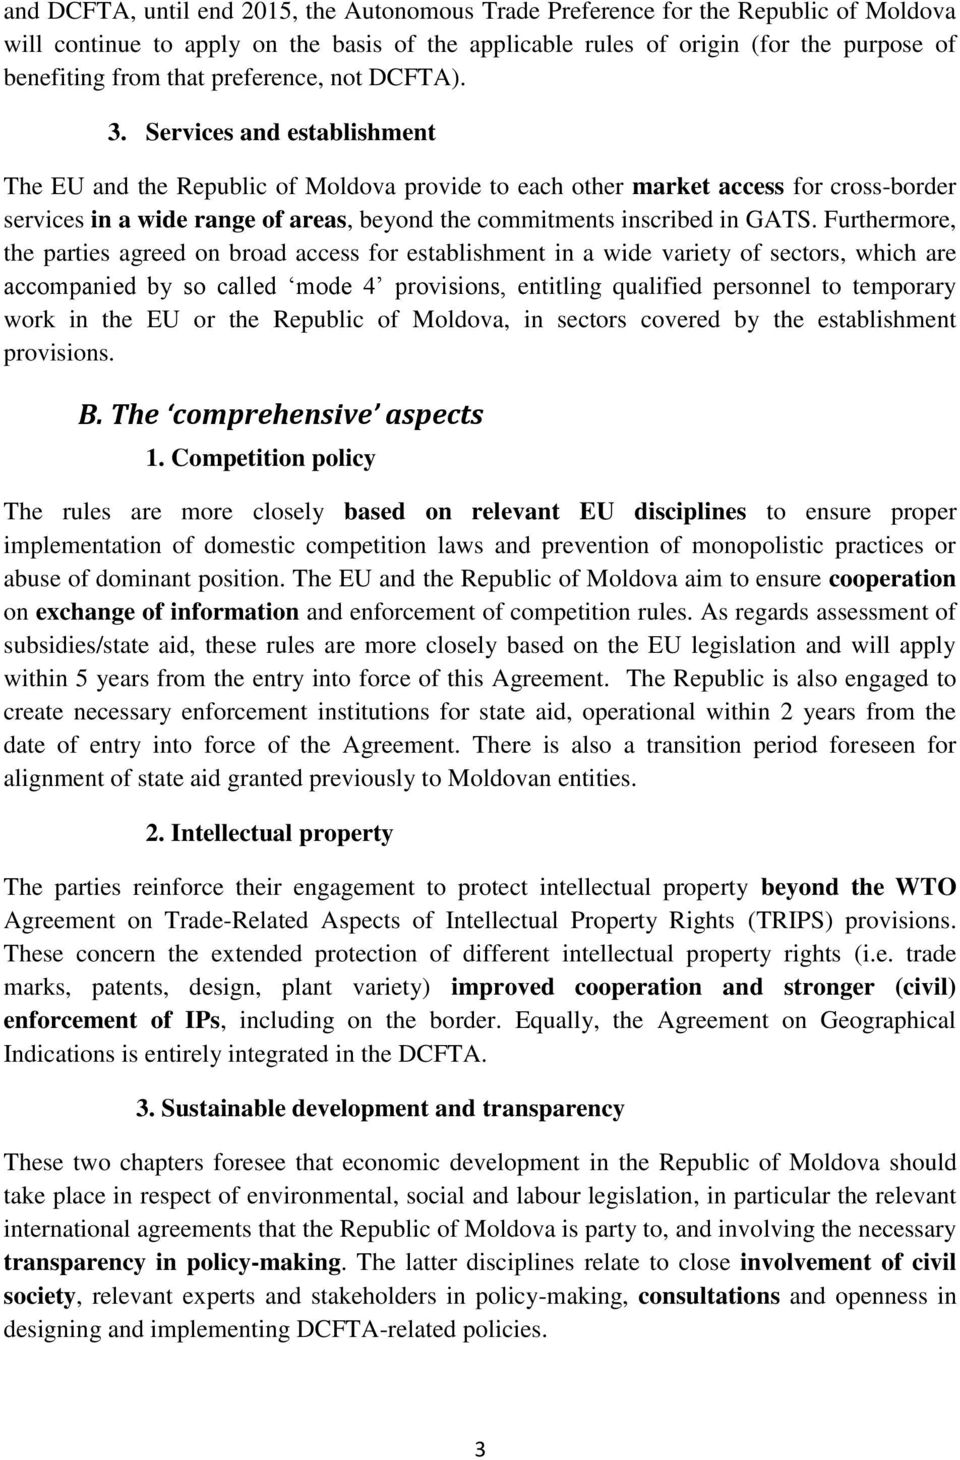 Services and establishment The EU and the Republic of Moldova provide to each other market access for cross-border services in a wide range of areas, beyond the commitments inscribed in GATS.